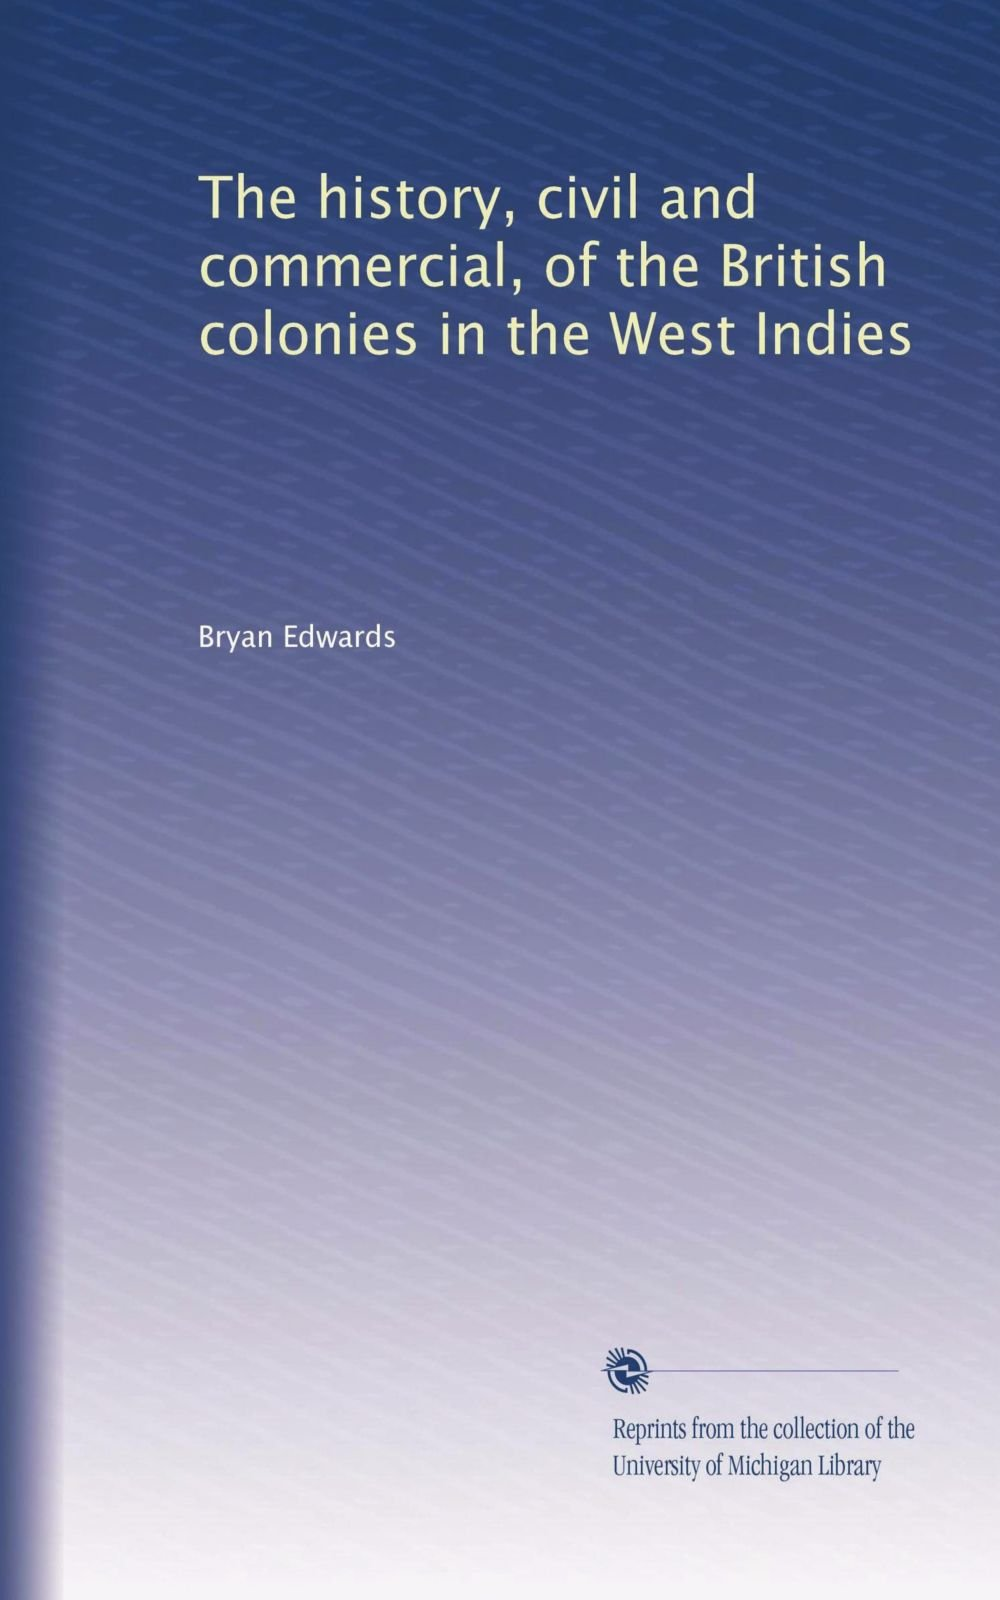 Download The history, civil and commercial, of the British colonies in the West Indies (Volume 3) pdf